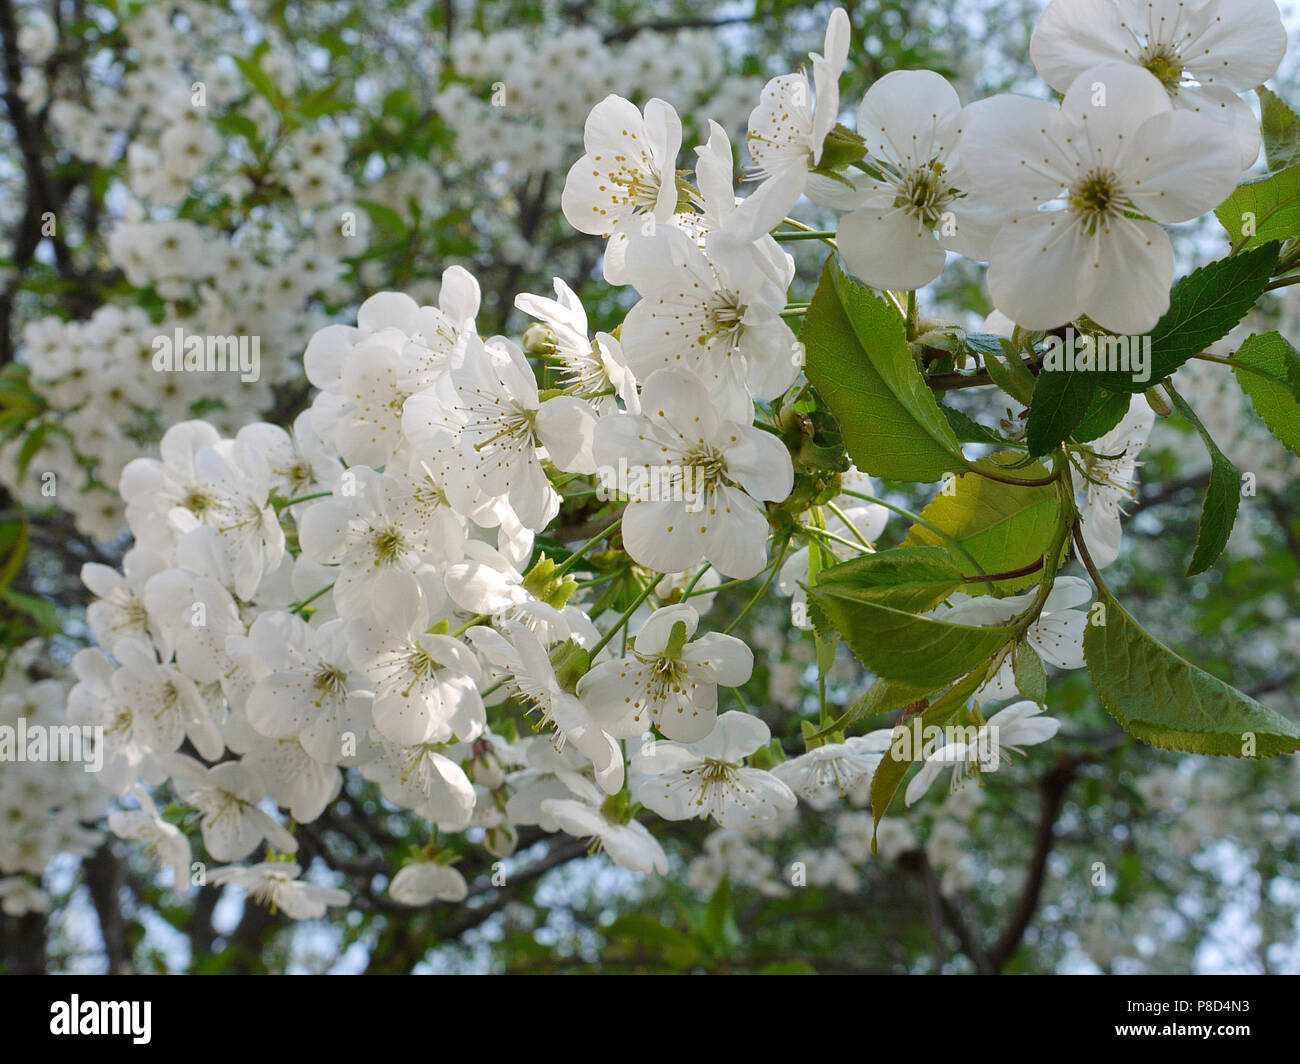 Flowers Of A Pear Tree Stock Photos Flowers Of A Pear Tree Stock